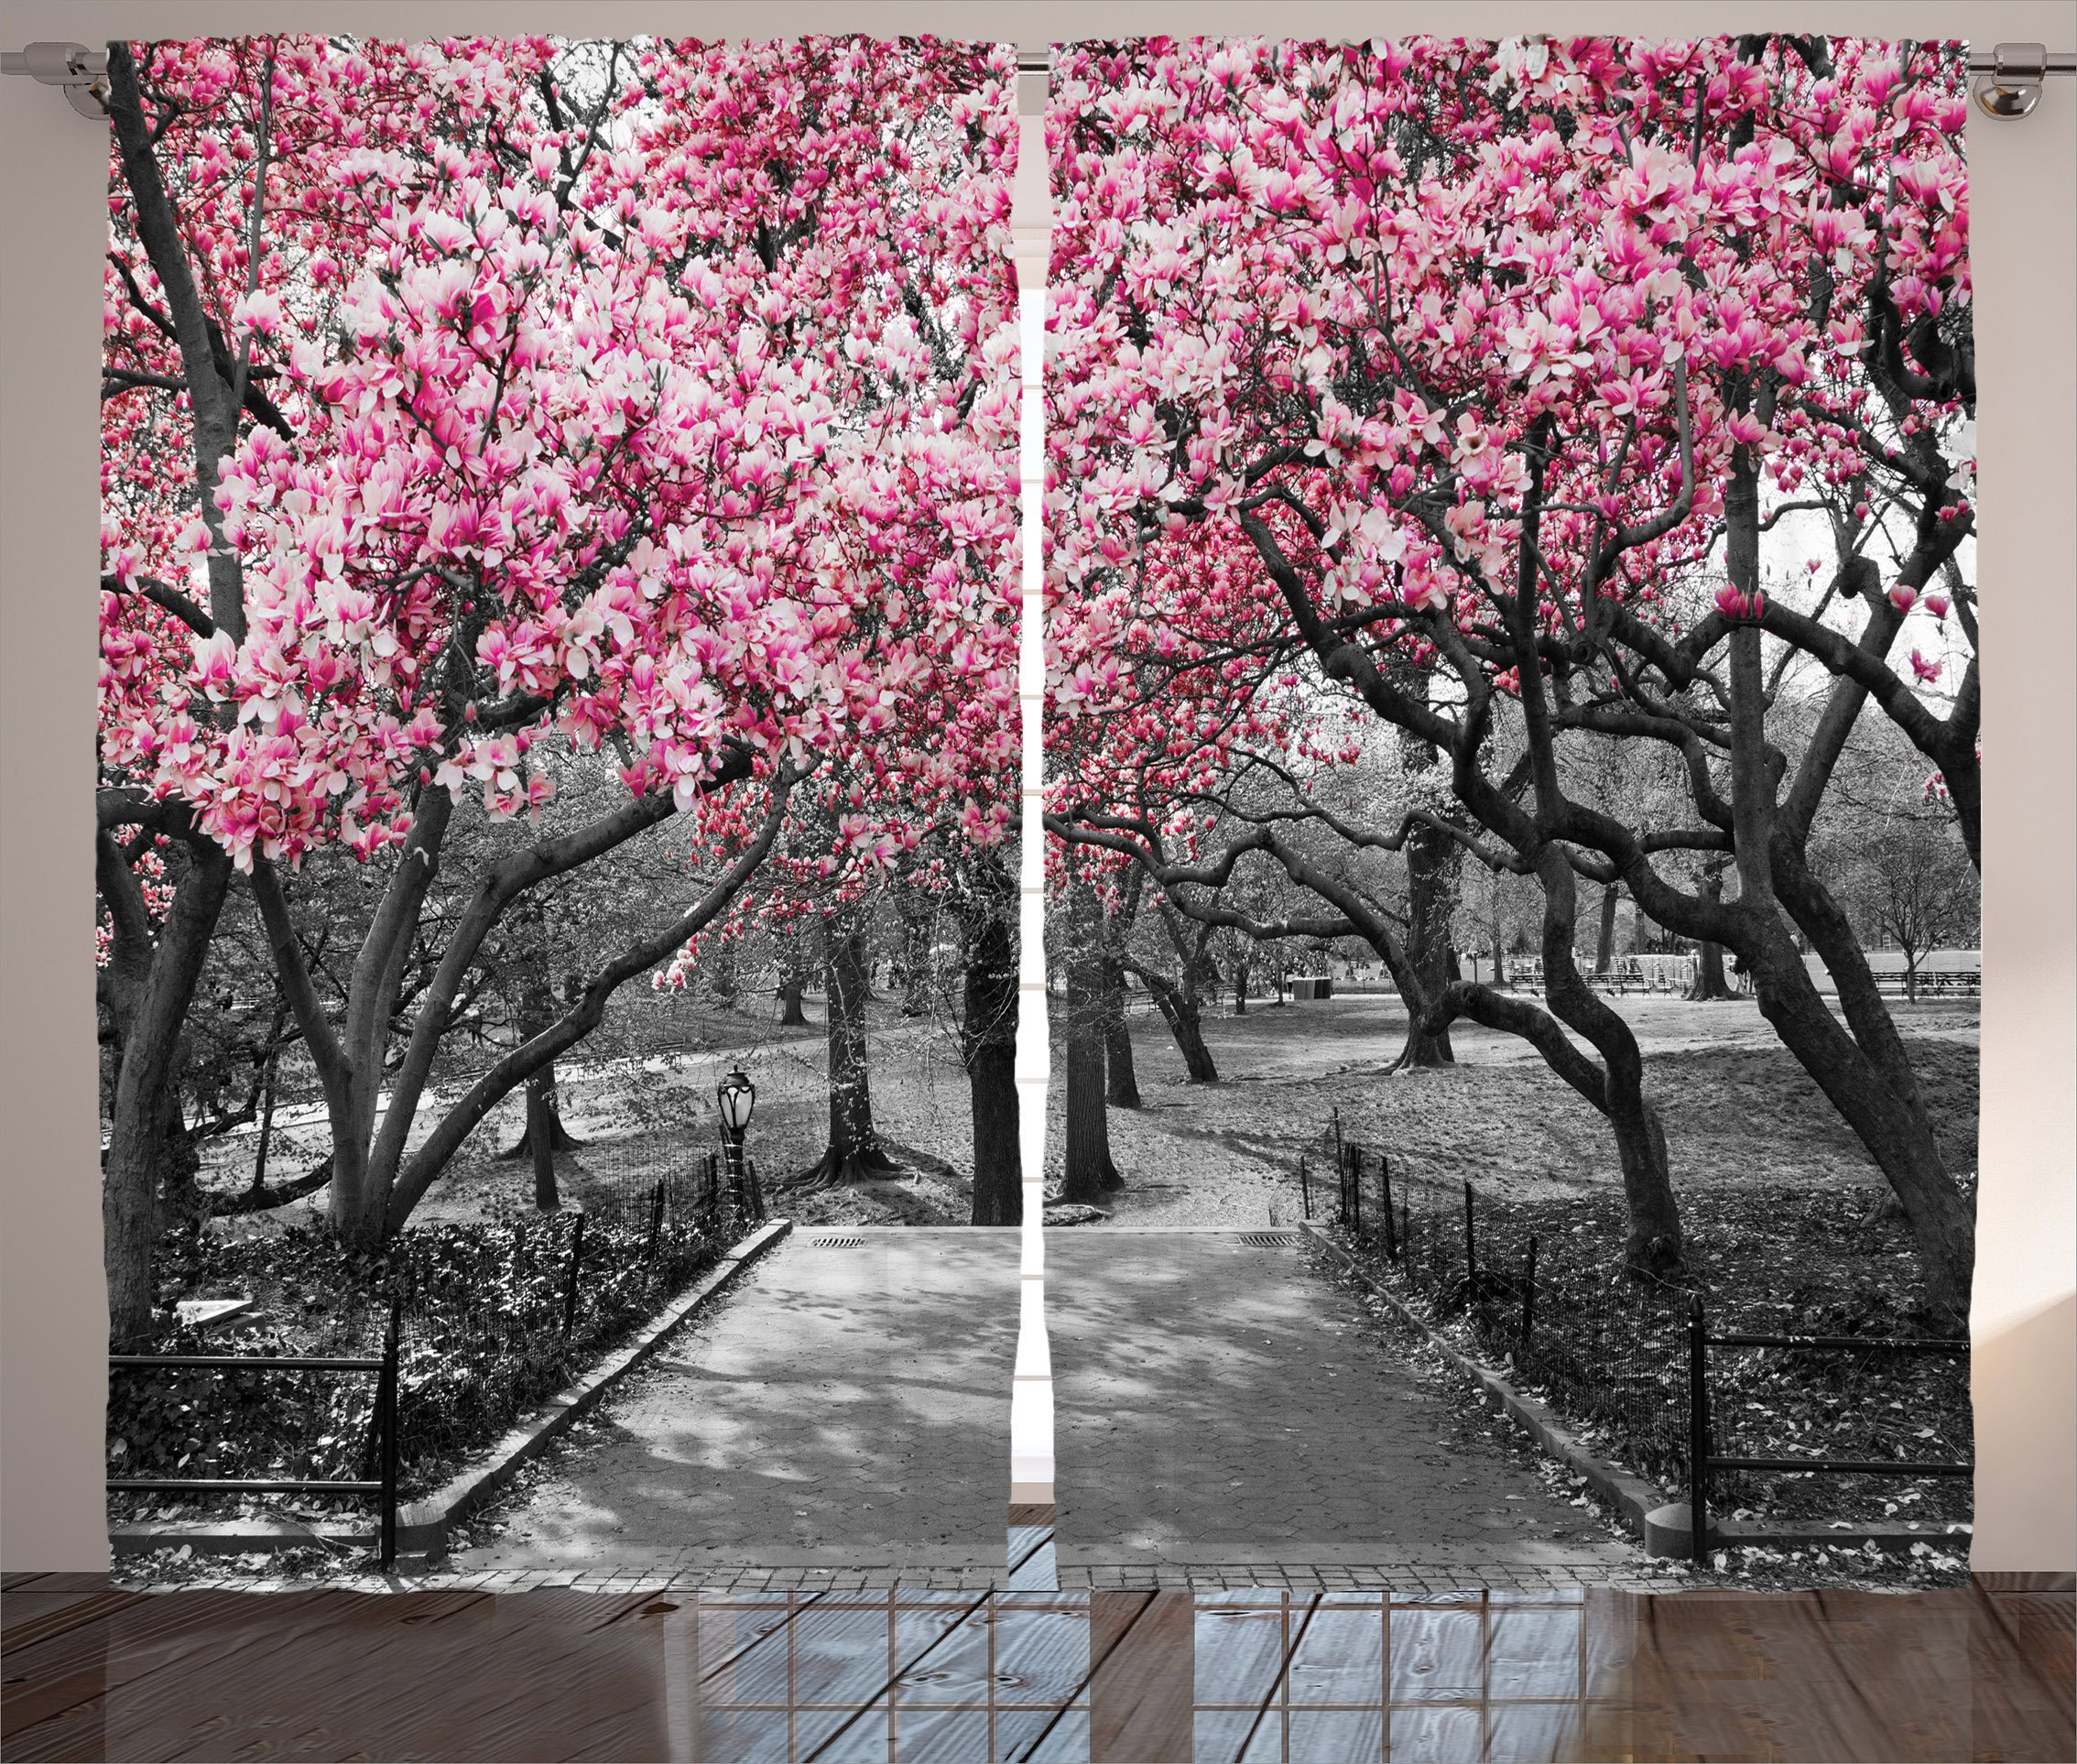 Ambesonne NYC Decor Collection, Blossoms In Central Park Cherry Bloom Trees Forest Spring Springtime Landscape Picture, Living Room Bedroom Curtain 2 Panels Set, 108 X 84 Inches, Pink Gray by Ambesonne